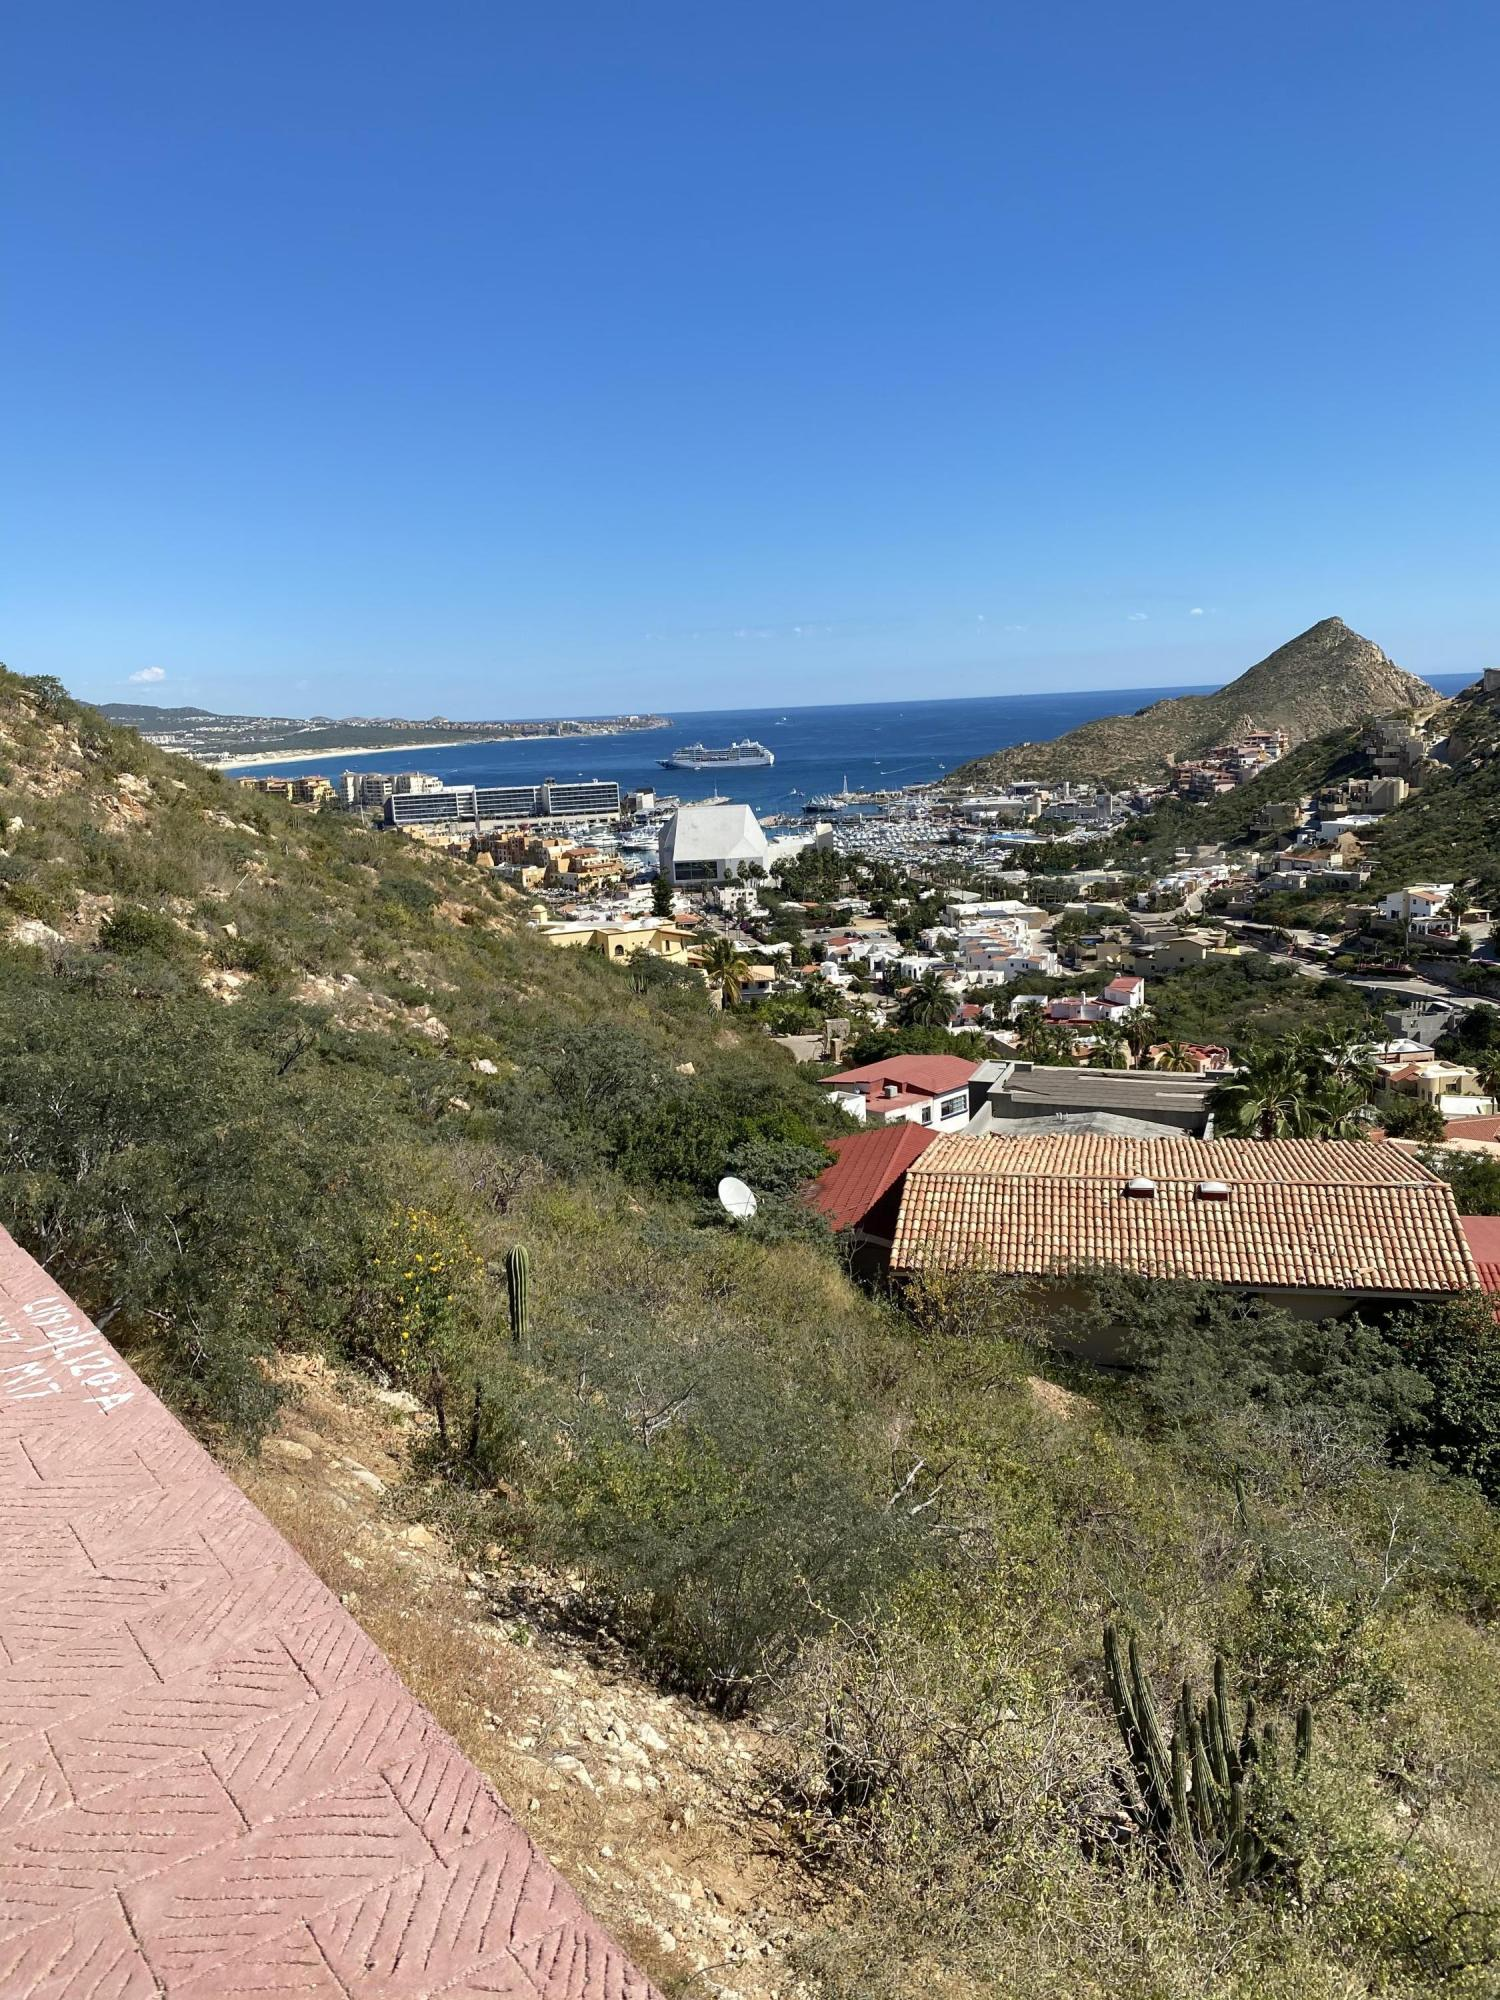 Cabo San Lucas, ,Land,For Sale,Camino del club,20-228